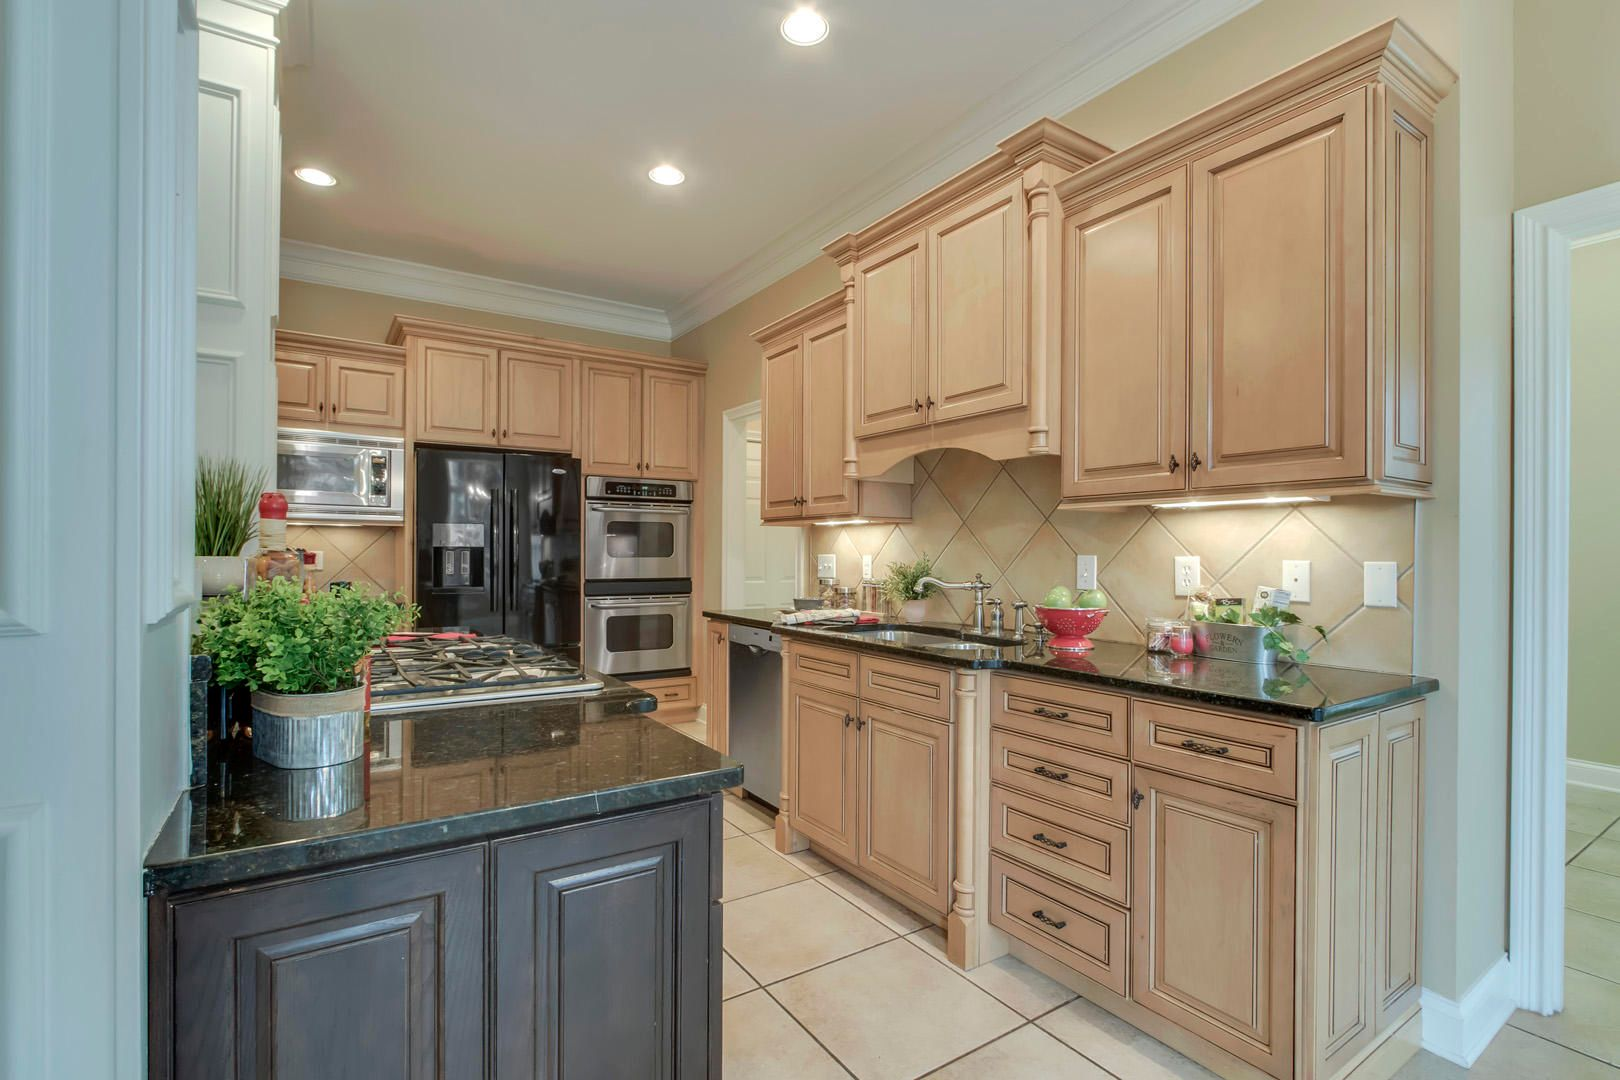 19_RedgraveRoad_1746_Kitchen02